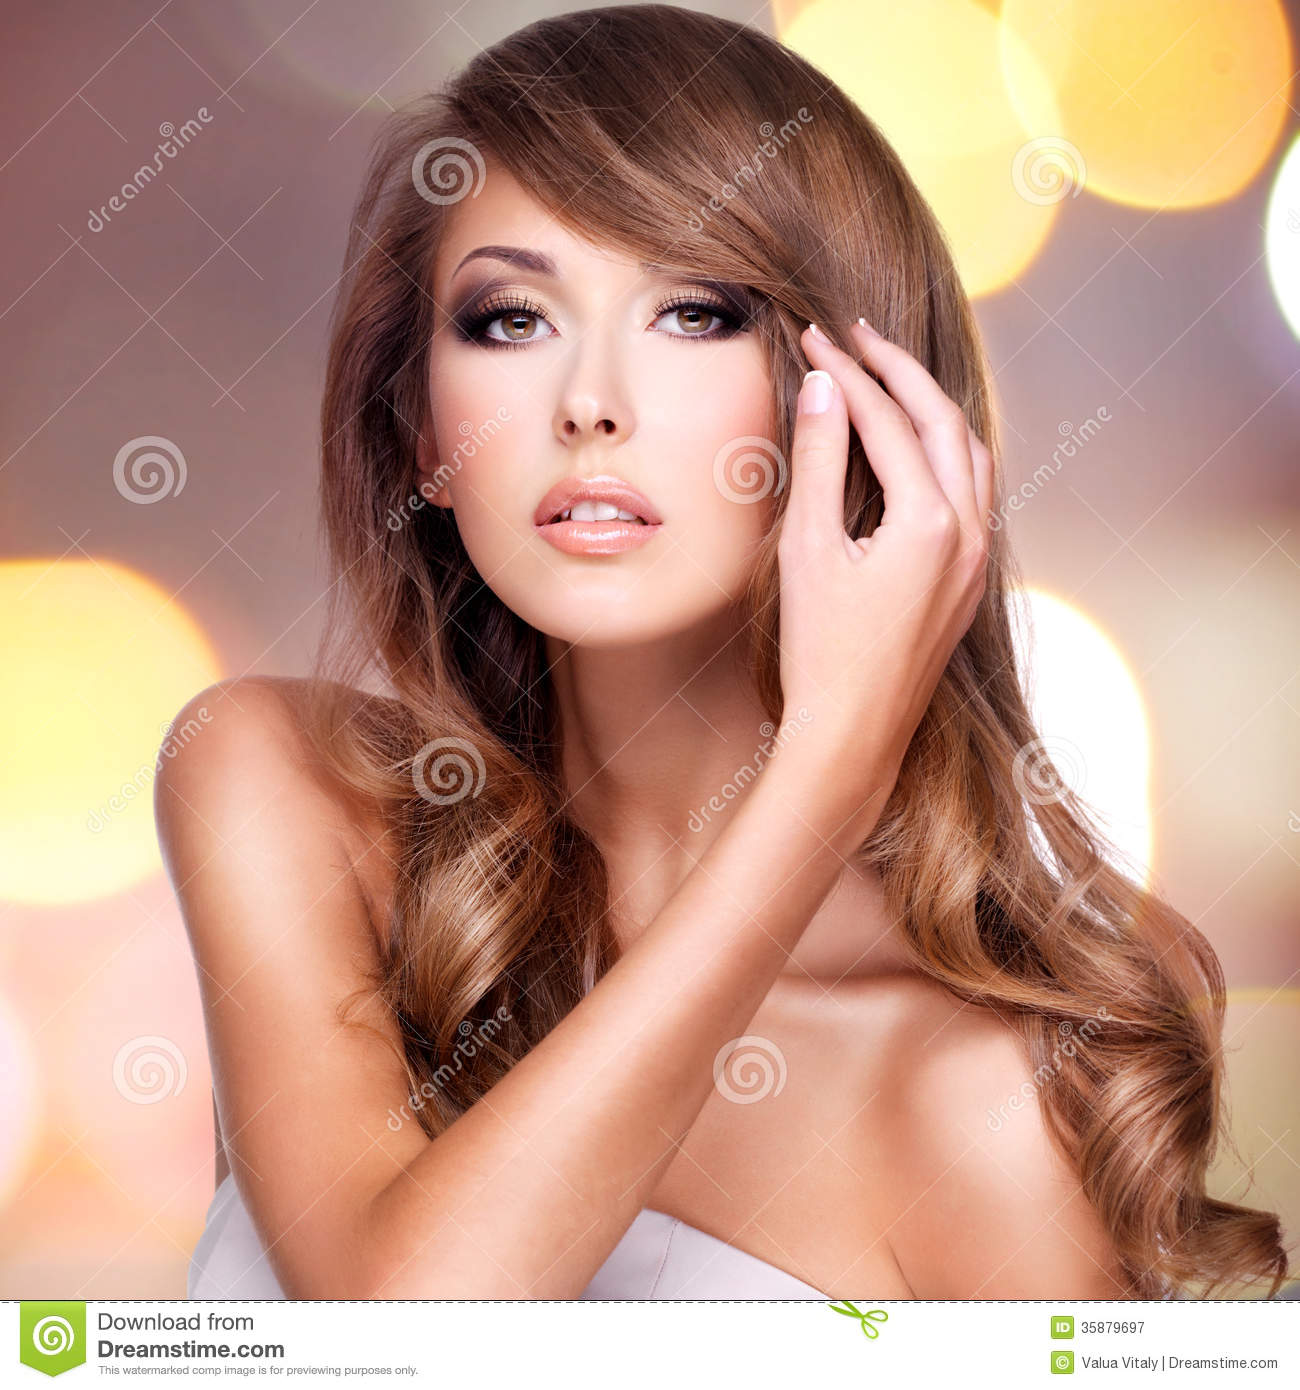 Photo Of An Attractive Woman Touching Her Beautiful Hair Stock Image - Image: 35879697